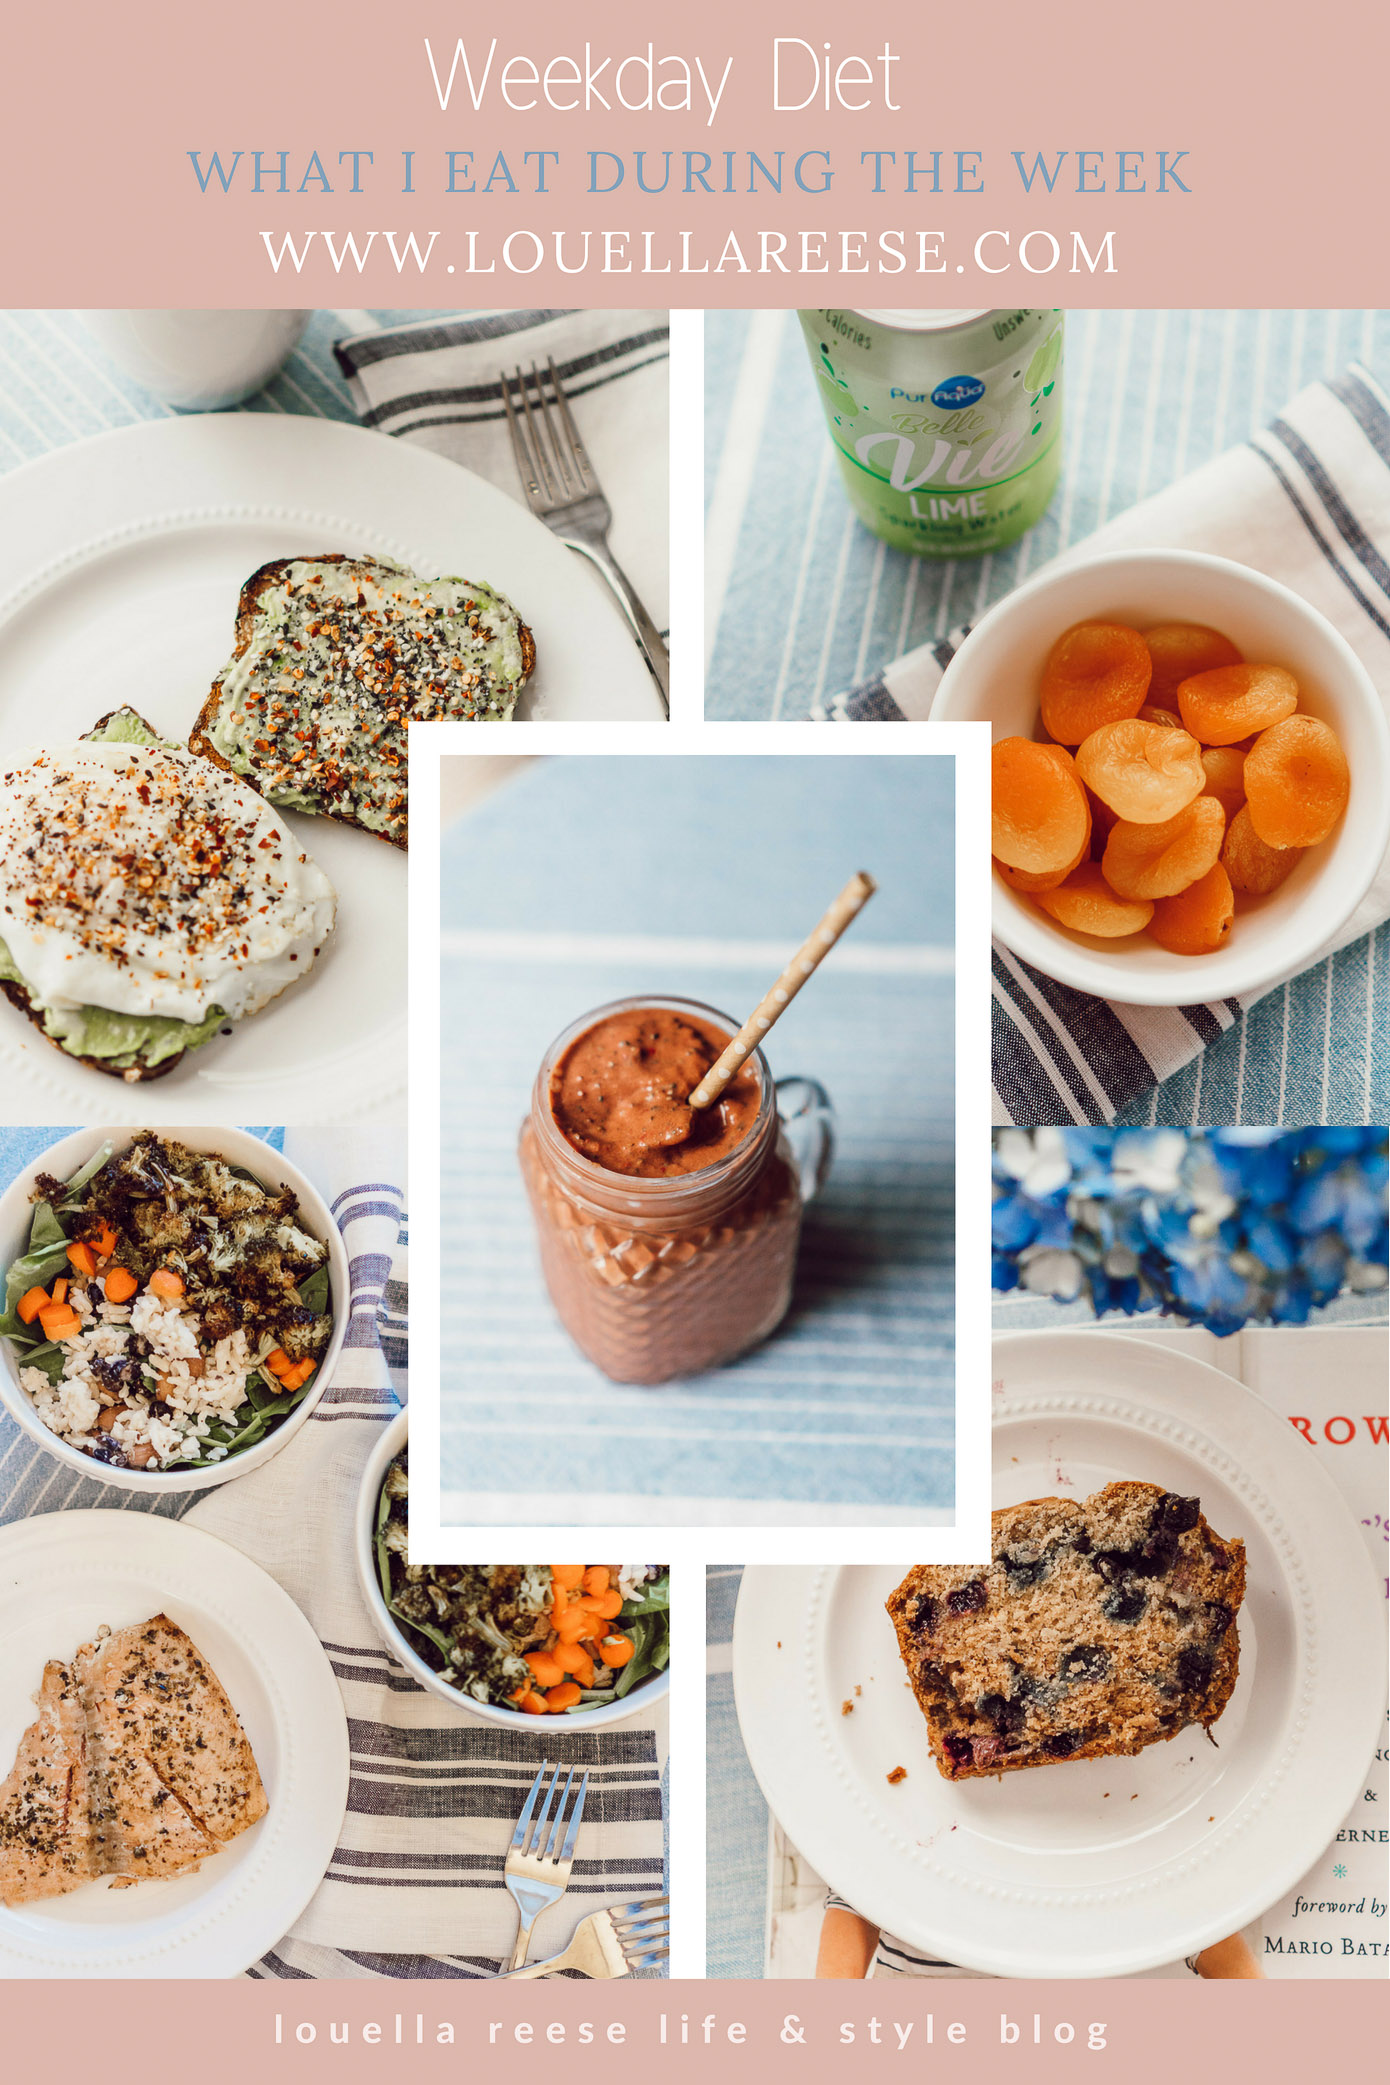 What I Eat During the Week, Weekday Diet featured on Louella Reese